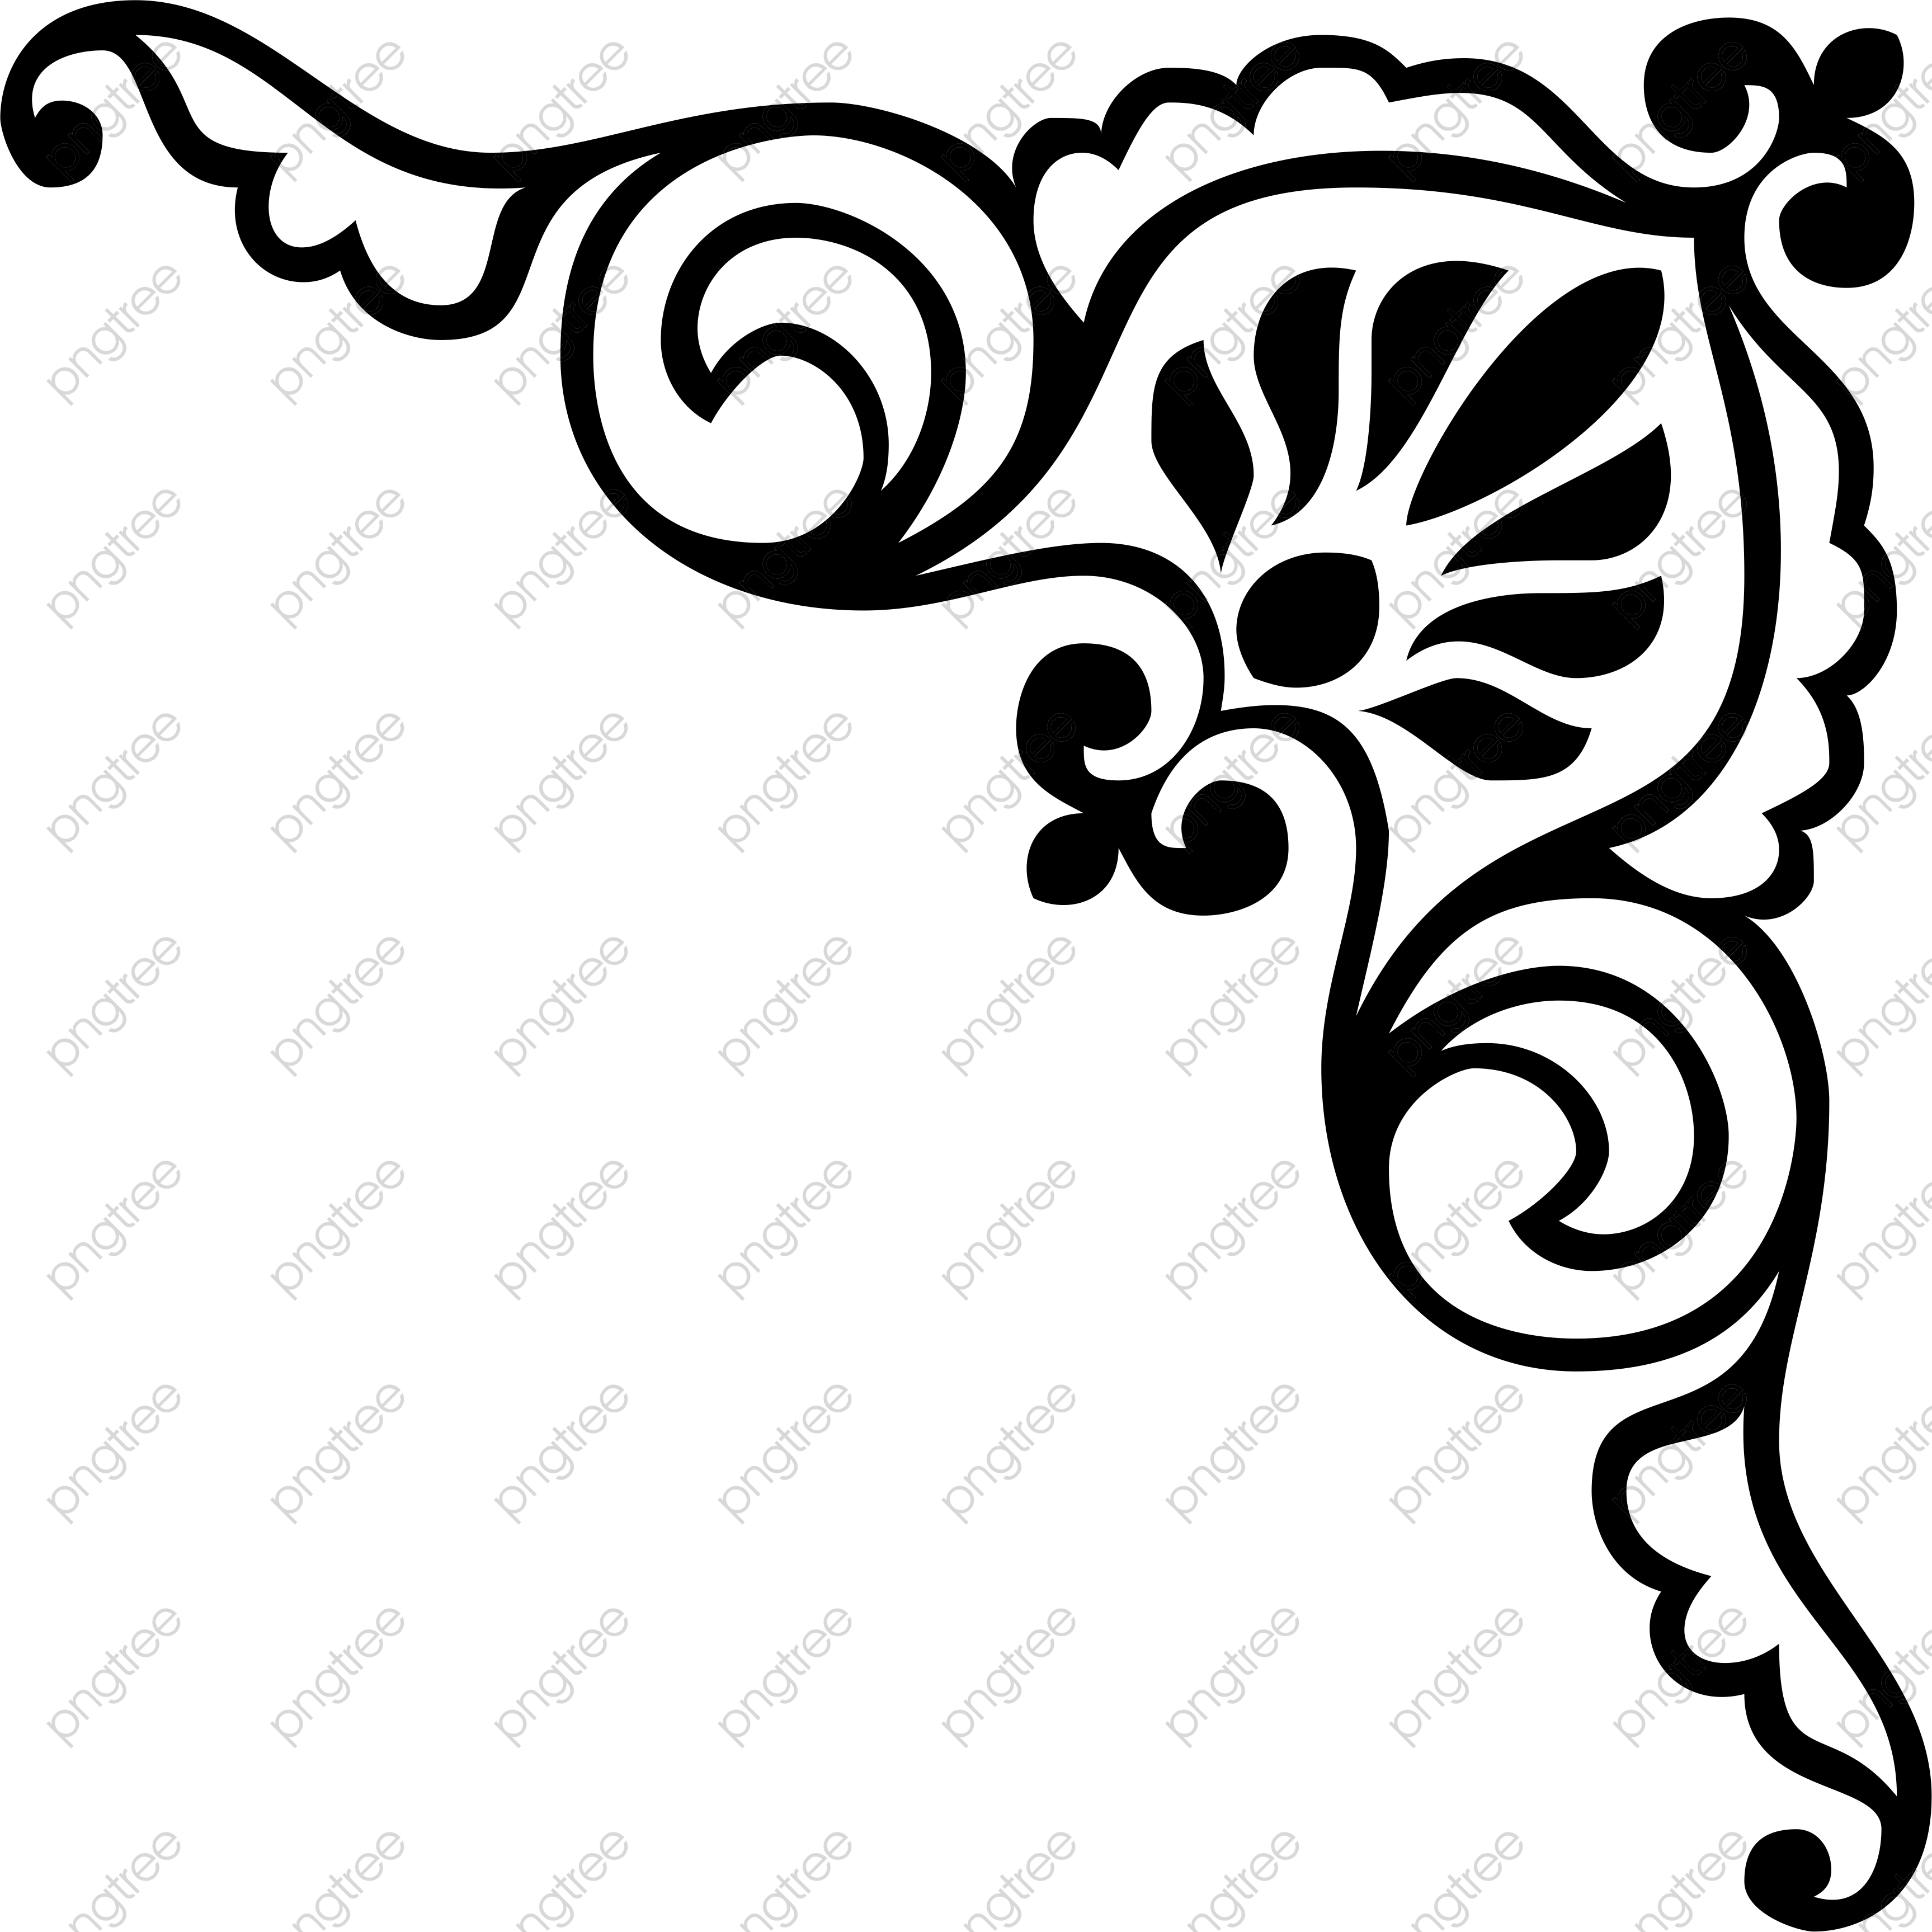 3454x3454 Transparent Traditional Corner Flower Lace Material Shading Png